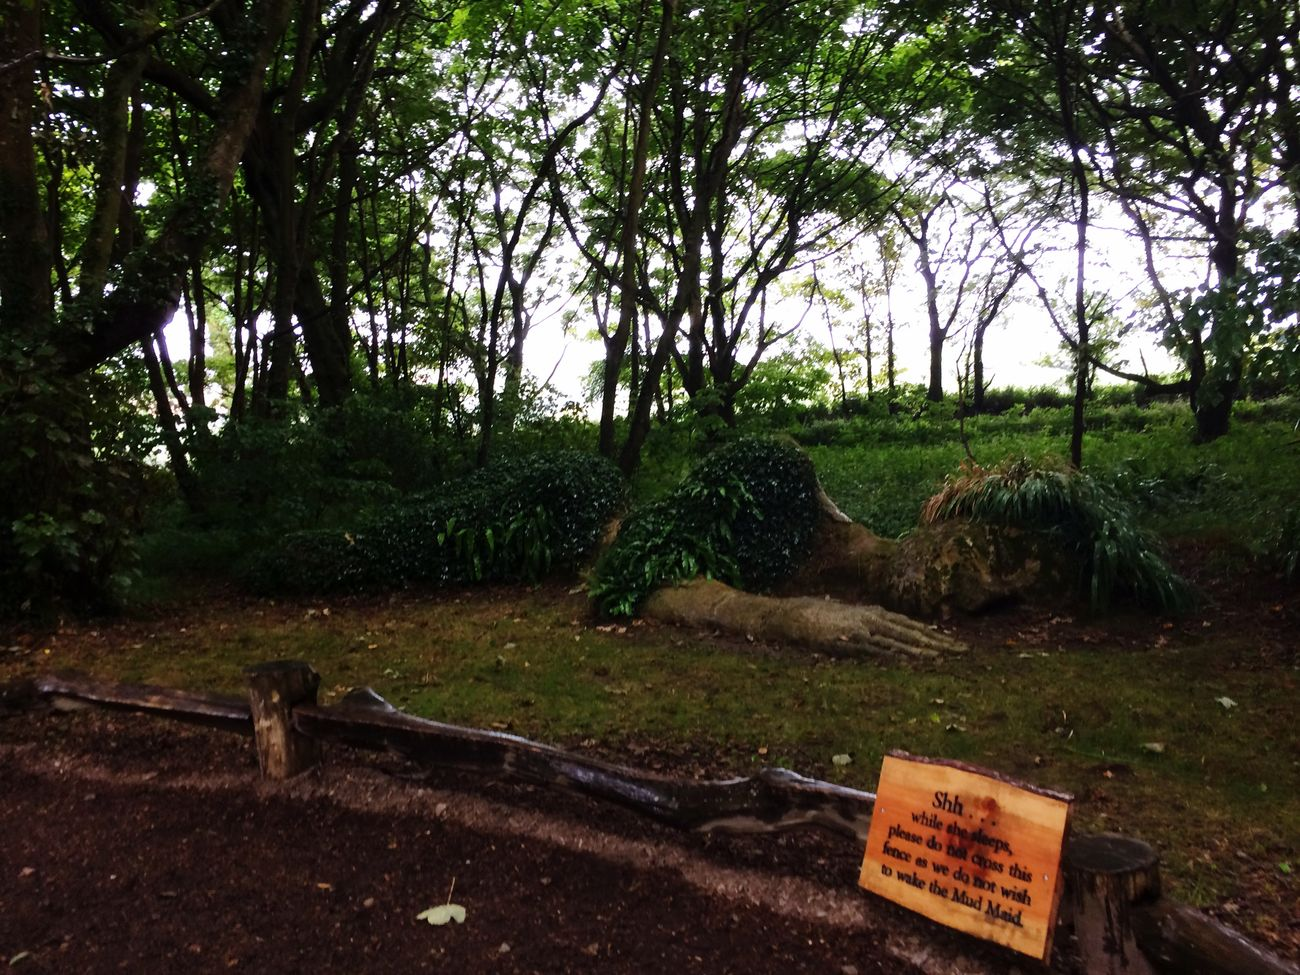 Lostgardensofheligan Gigant Sleeping Tranquility Tree Communication Forest WoodLand Non-urban Scene Text Scenics Growth Outdoors Countryside Nature Day Solitude Plant Green Color Beauty In Nature Green No People Tranquil Scene Kernow Mad Maid